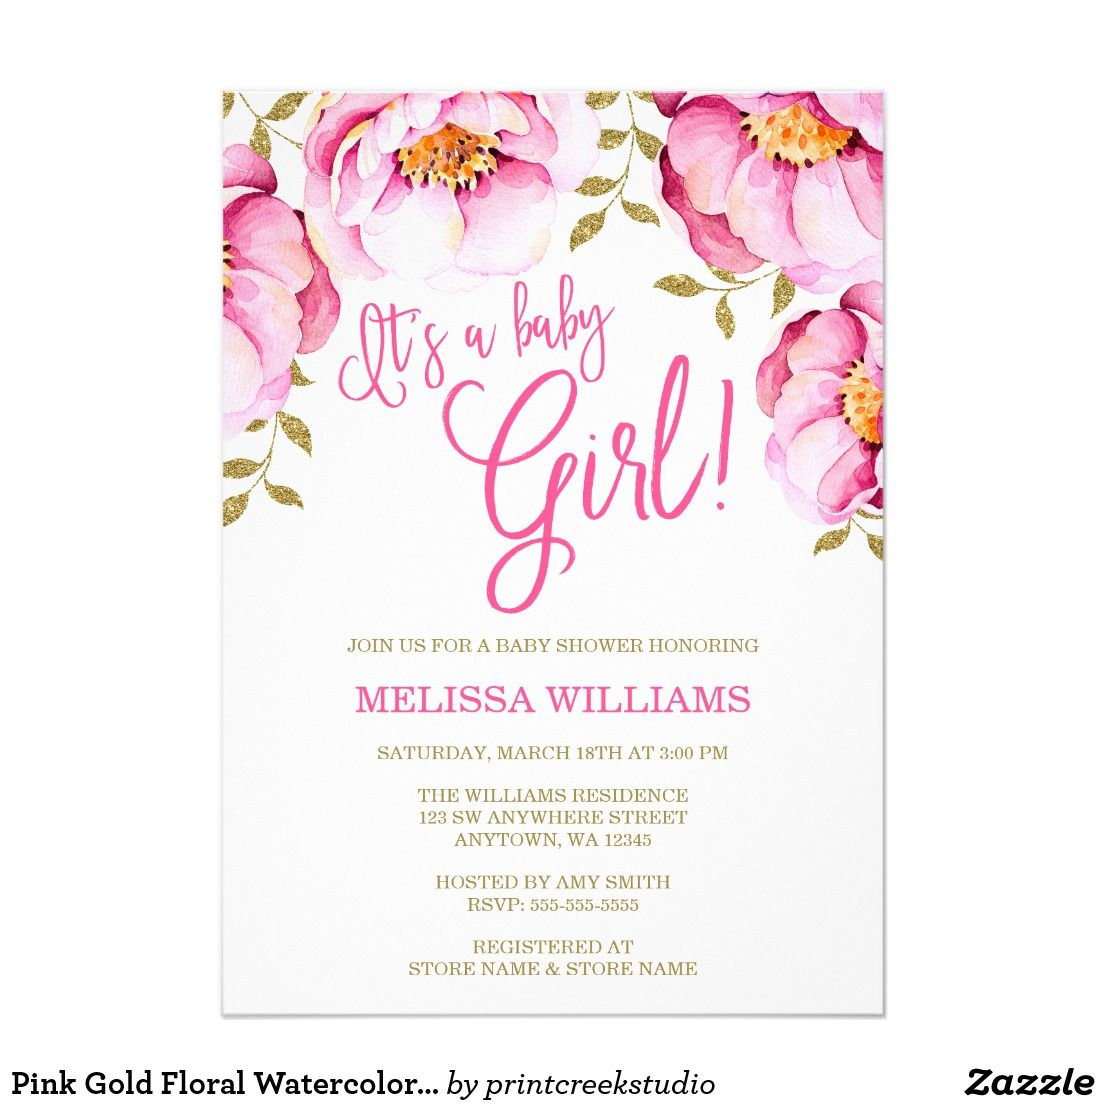 Pink Gold Floral Watercolor Baby Shower Invitation | Shower invitations